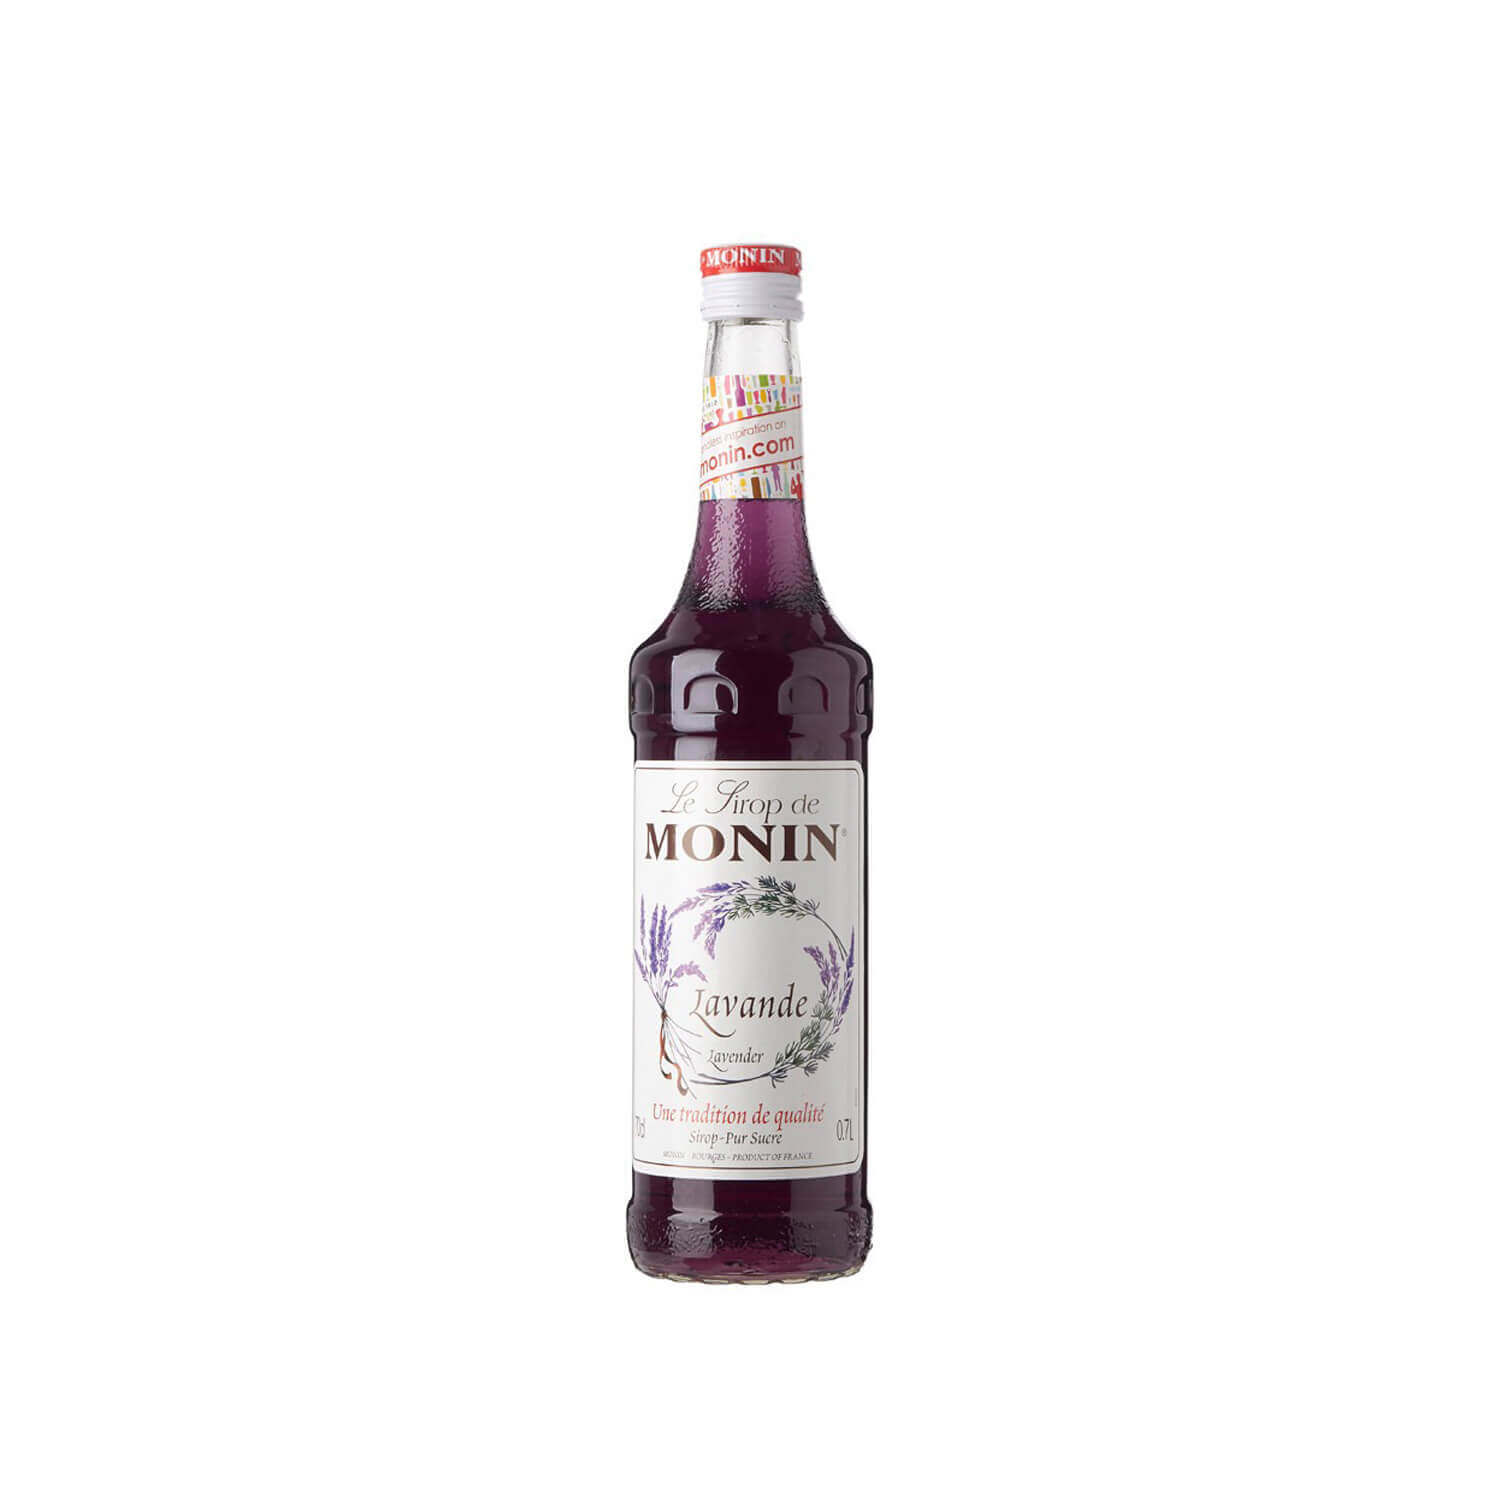 Monin - Siroop - Lavendel - 700 ml